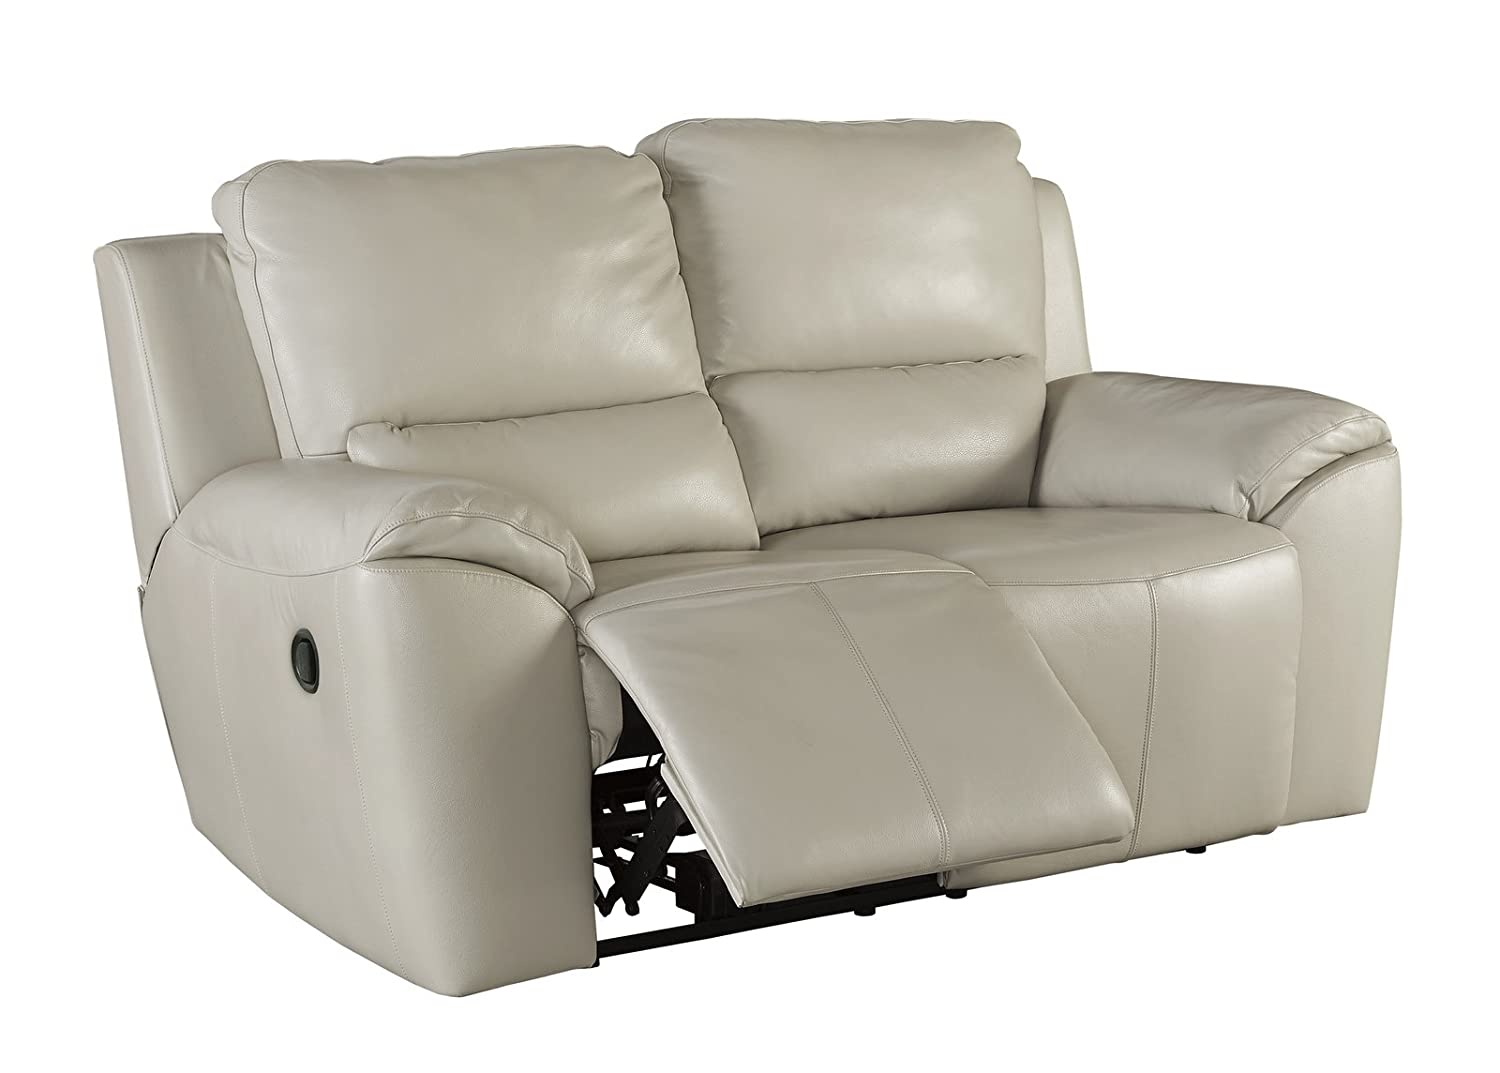 Amazon.com Ashley Valeton U7350074 70  Leather Match Power Reclining Loveseat with Plush Padded Arms Jumbo Stitching Details and Split Back Cushions in ...  sc 1 st  Amazon.com & Amazon.com: Ashley Valeton U7350074 70